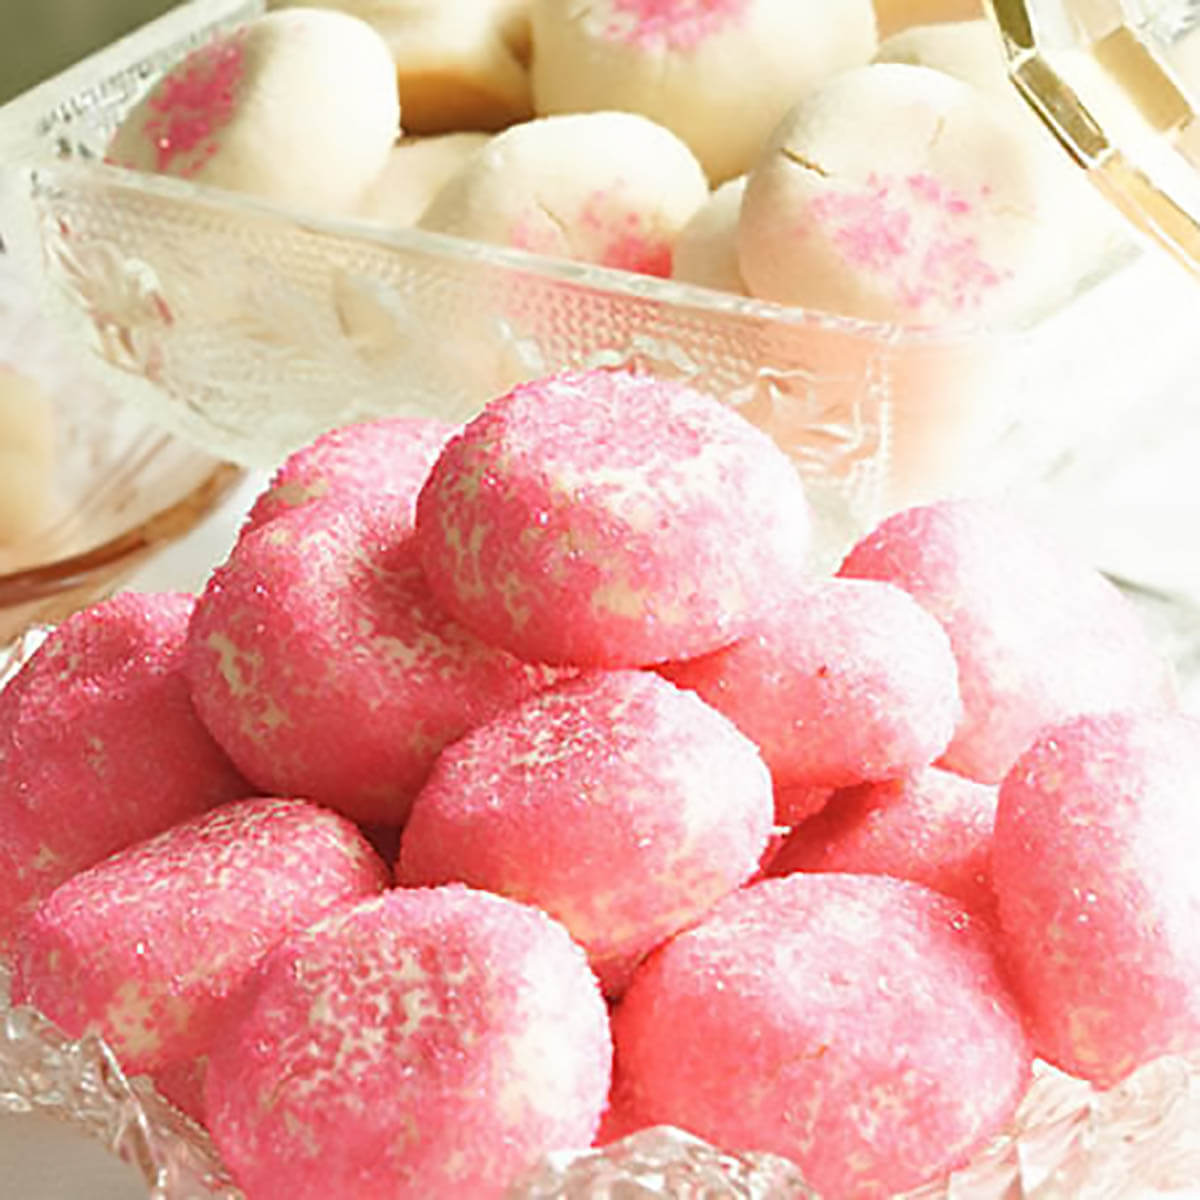 Butter cookies with pink sprinkles in glass bowl.